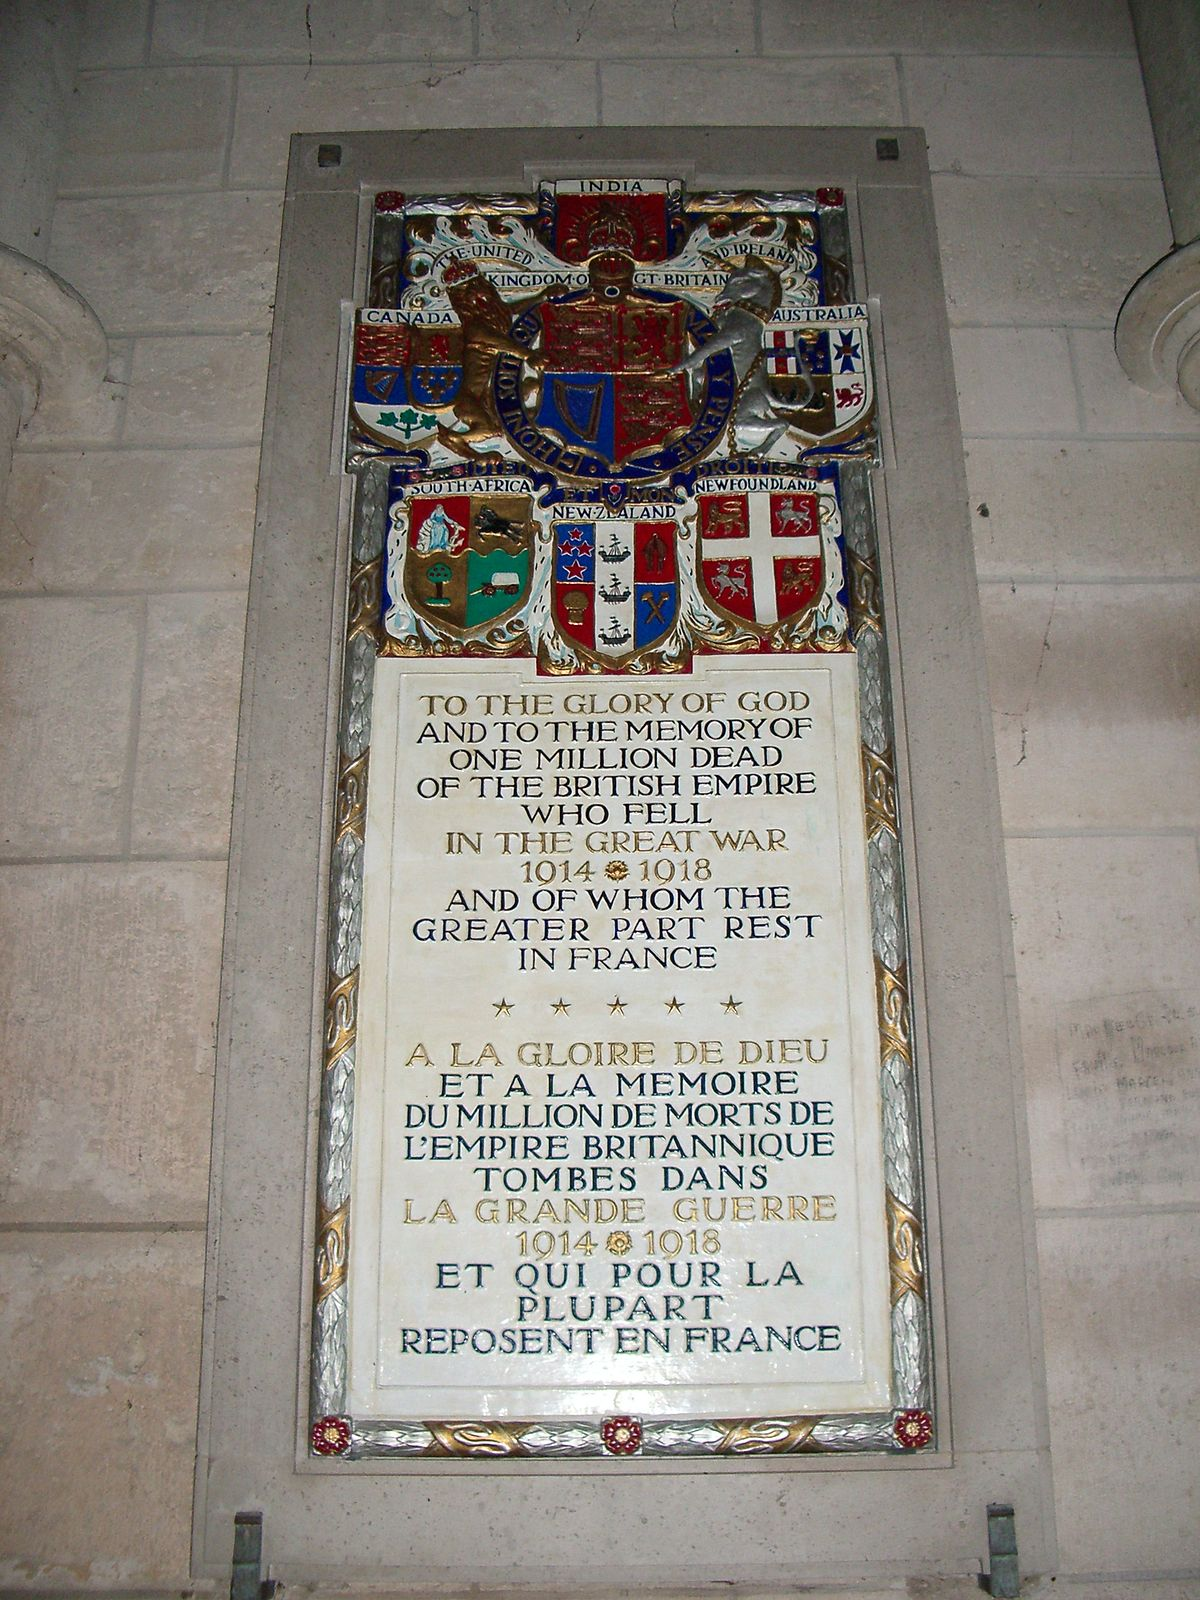 Memorial tablets to the British Empire dead